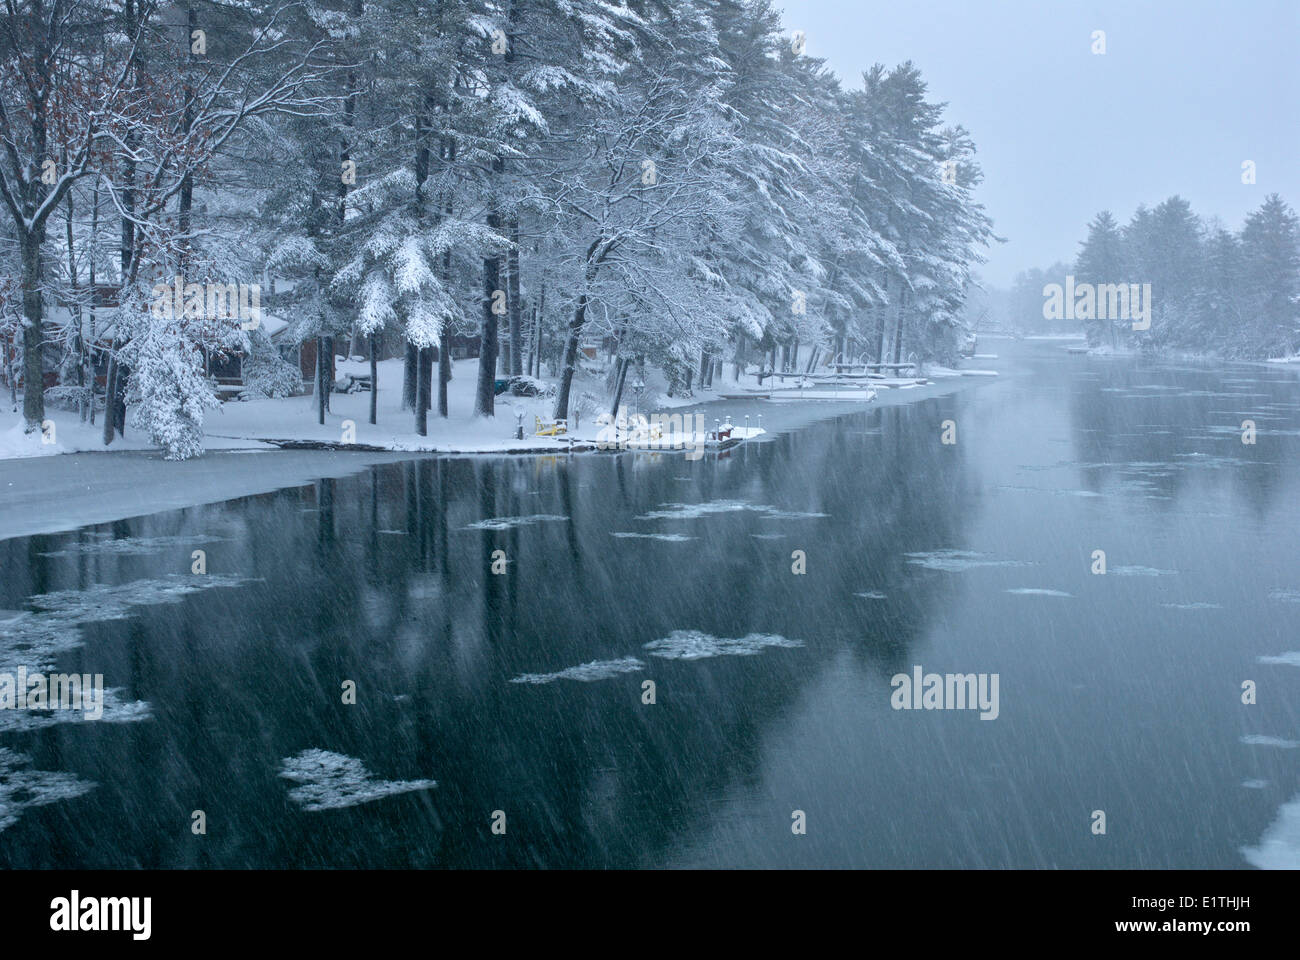 Snow Squall in Cottage country on the Severn river, Muskoka Ontario Stock Photo